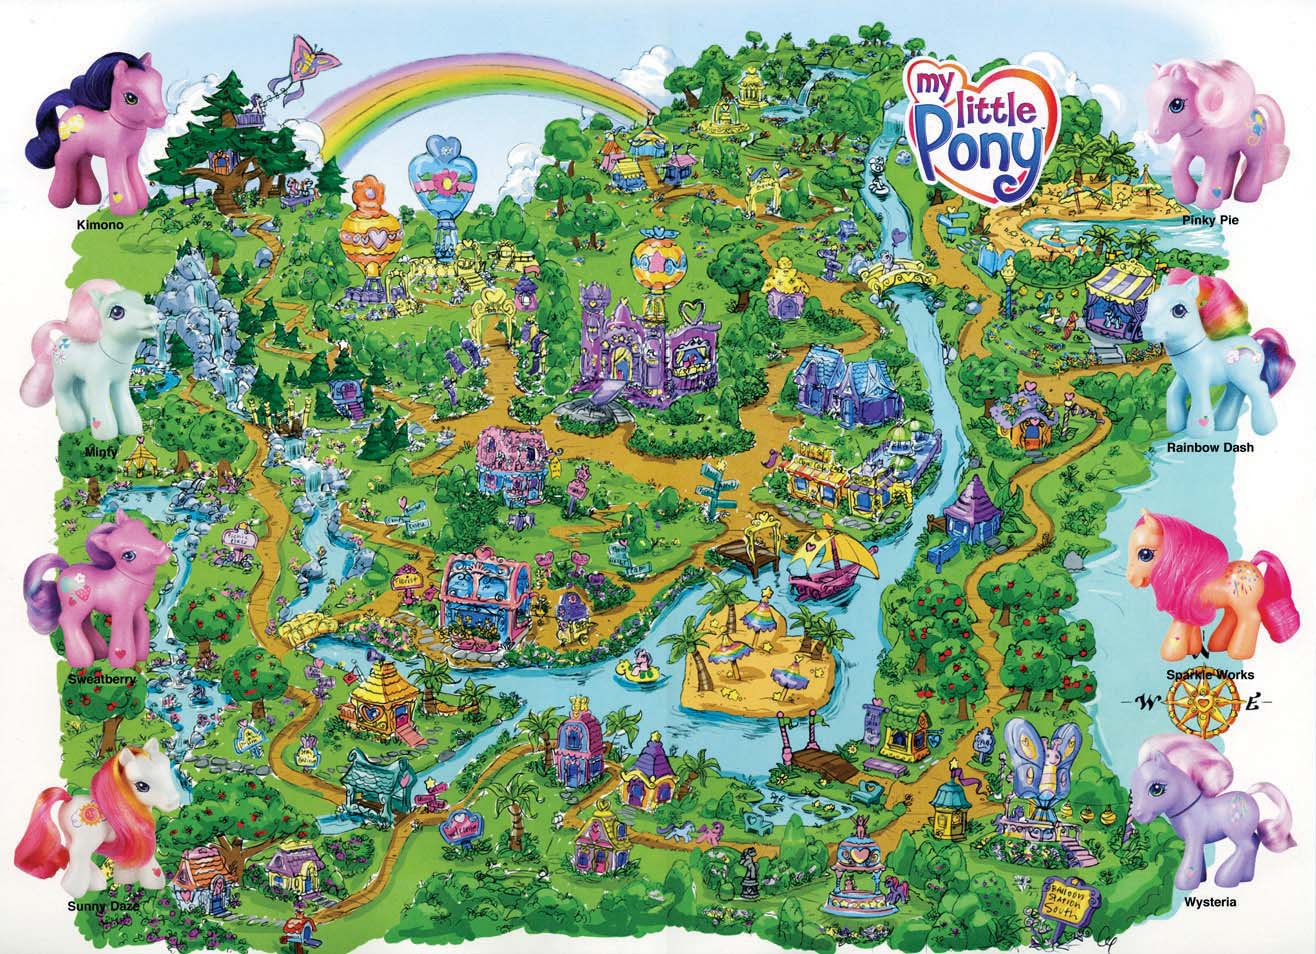 my little pony map for minecraft with G3 Ponyville on Watch furthermore Watch moreover Fantasy Game Map 418784398 moreover South Park Review Tv as well 366 Days Of Pony Ticket Master.